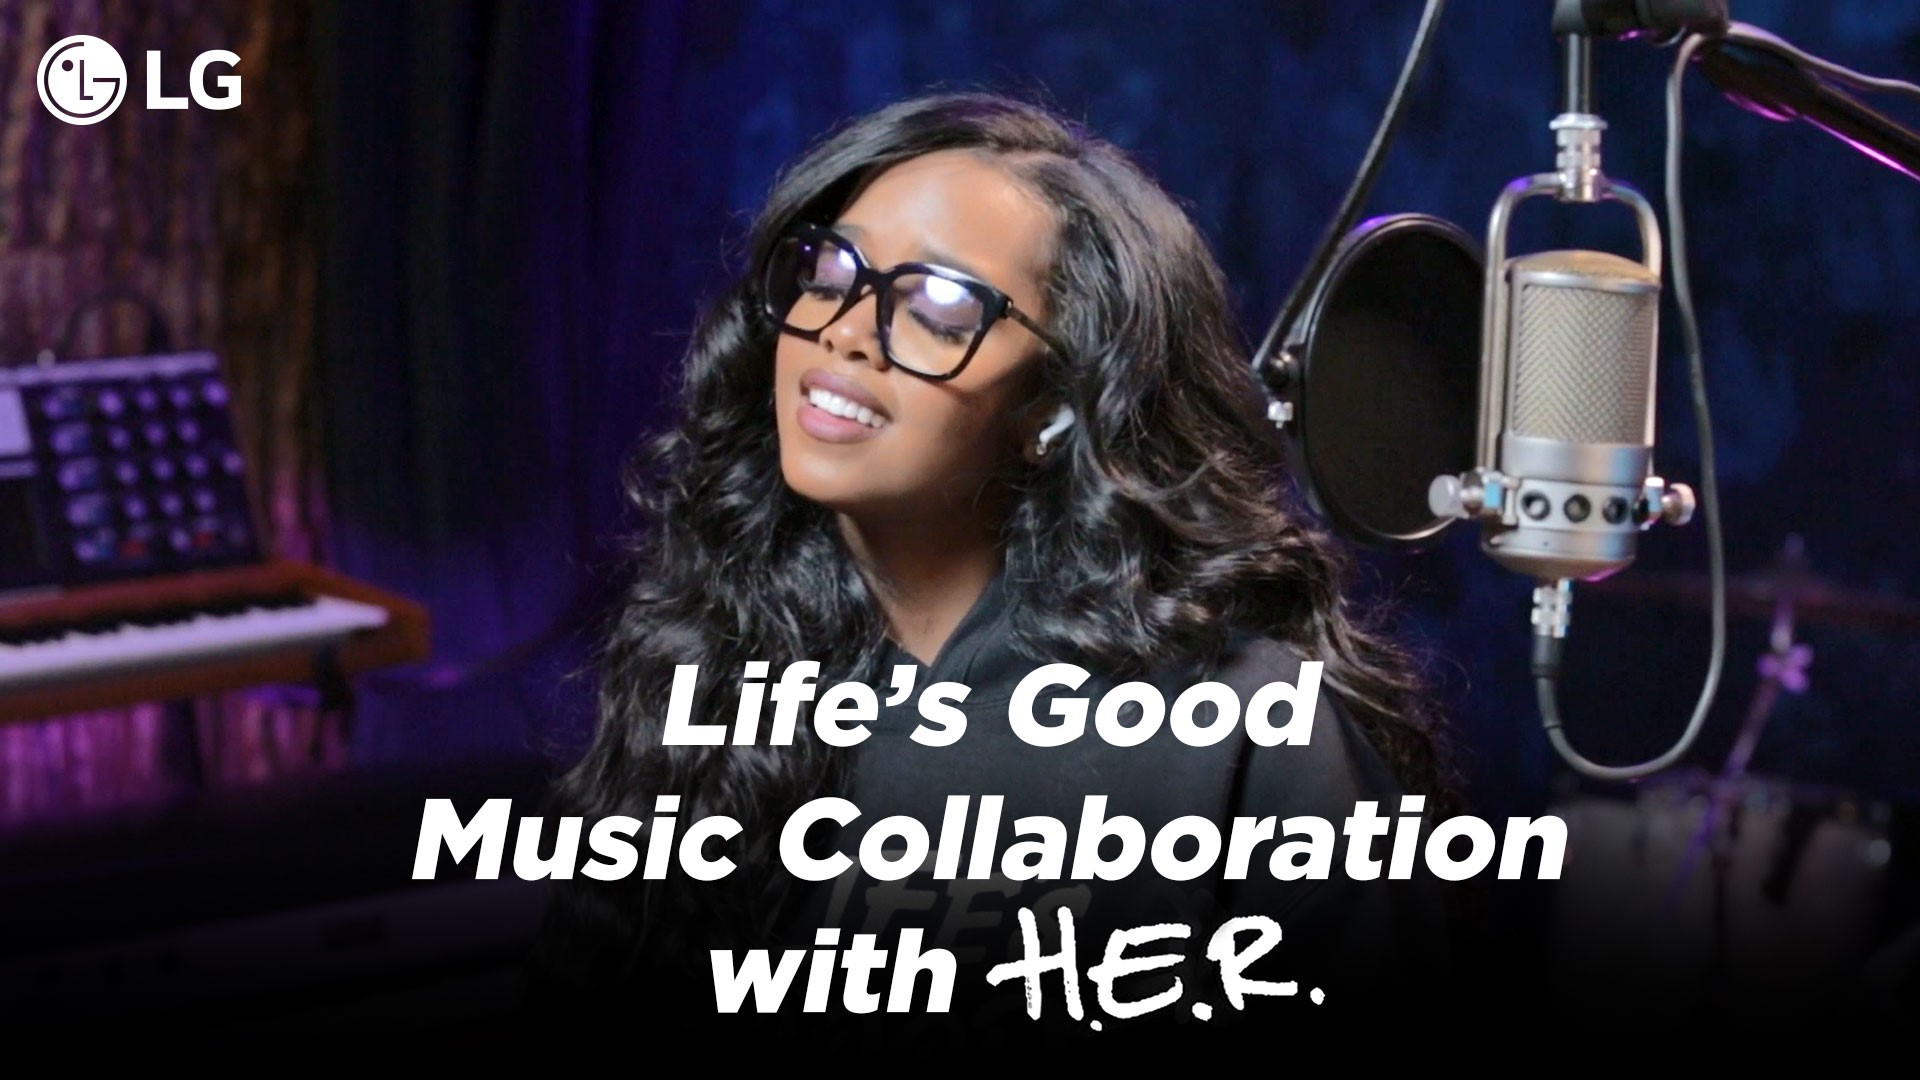 Grammy Award-winning artist H.E.R. singing in the studio for LG's Life's Good Music Project